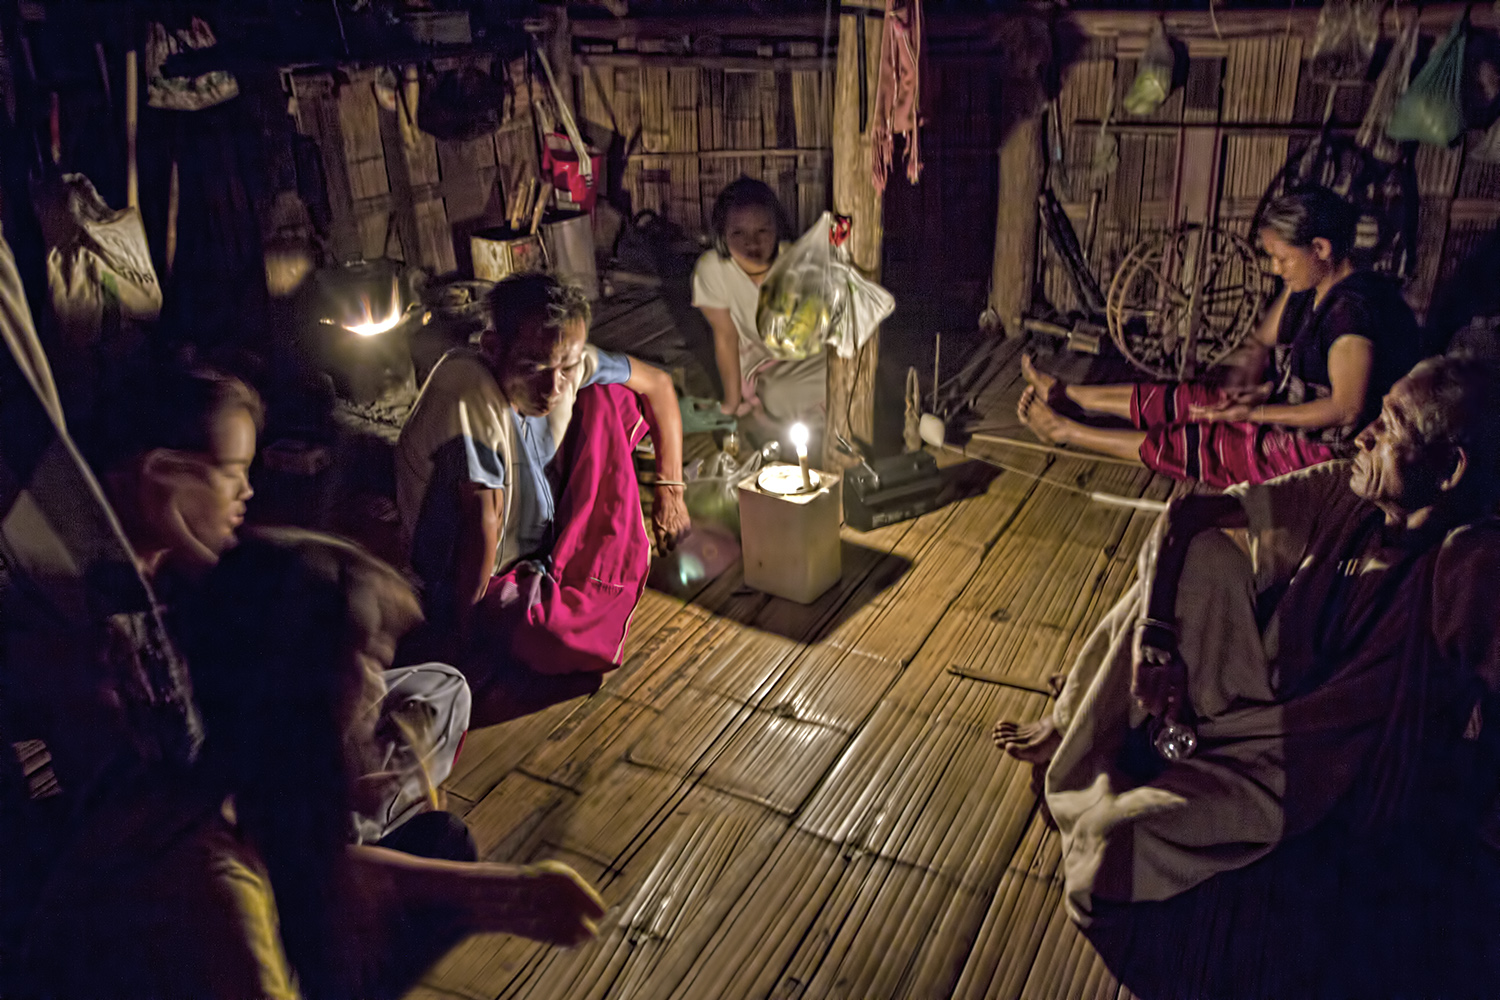 a family of thailand's hilltribe people are sitting on the floor a bamboo house and a candle is lit and placed in the middle of the room